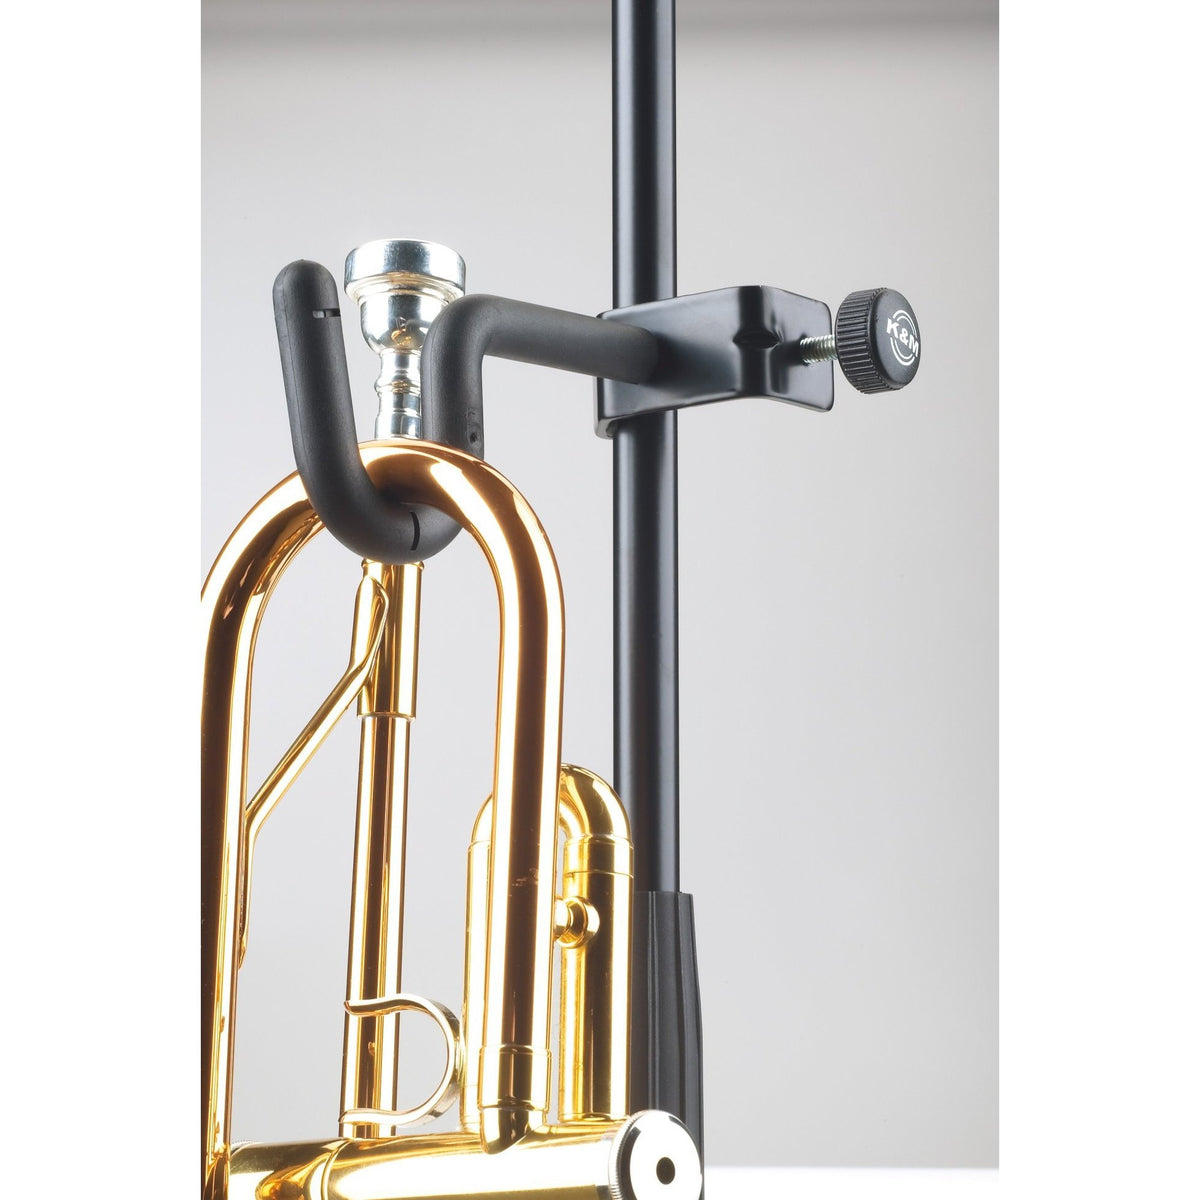 König & Meyer - 157 Trumpet Holder (Attachable to Music Stands)-Instrument Stand-König & Meyer-Music Elements